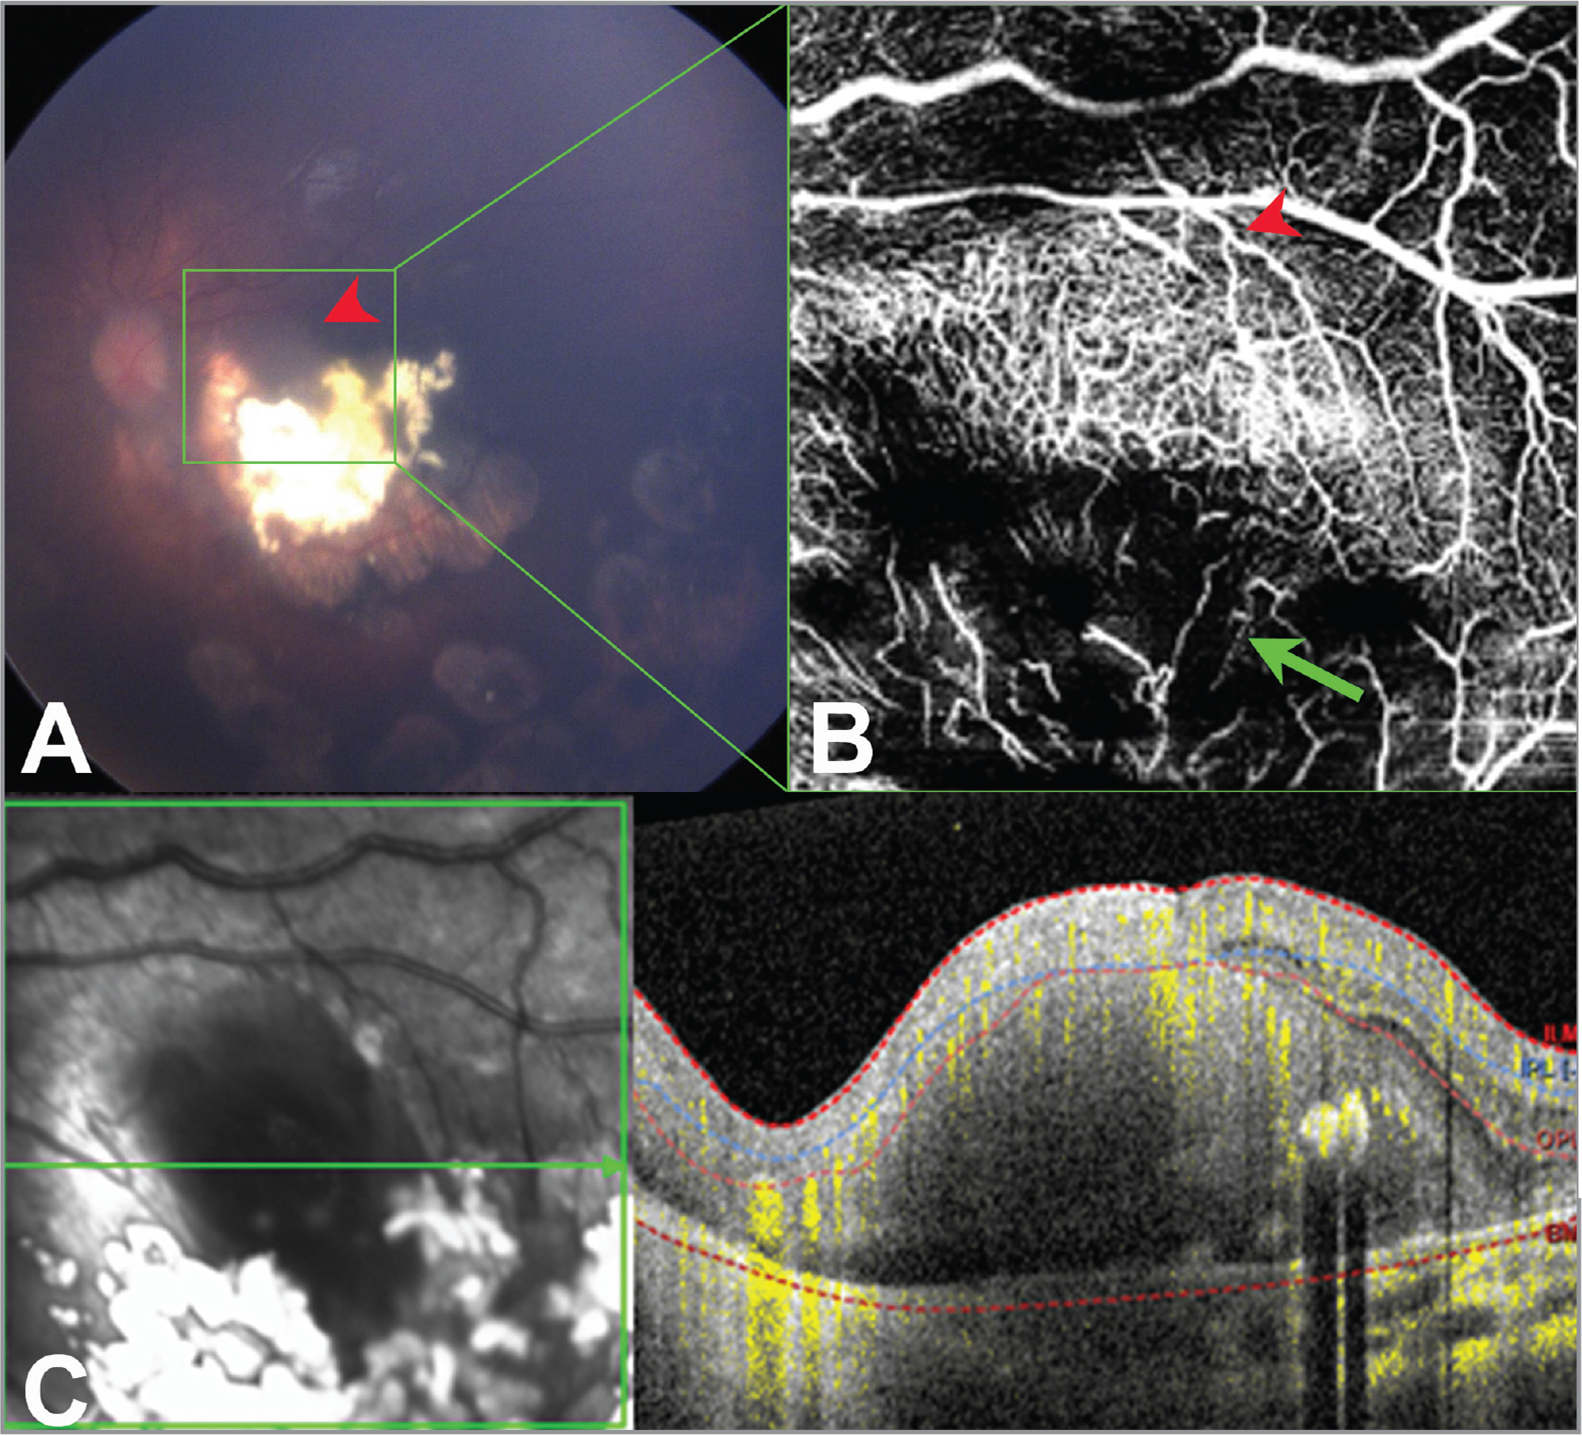 Multimodal imaging of Case 4. Fundus photo (A) showing a retinoblastoma lesion in the macula with type 3 regression. The noncalcified portion appears somewhat pearly (red arrowhead). En face 20° × 20° optical coherence tomography angiography (OCTA) through a portion of this lesion (outlined in green) shows dense intrinsic vascularity (B) in the superficial aspect of the noncalcified portion with dilated feeder/draining vessels (red arrowhead). The OCTA image also shows a deeper aspect of the calcified portion of this lesion, which reveals more dilated intrinsic vasculature (green arrow) and shadowing from the calcifications. (C) OCT B-scan with flow overlay of the lesion. The noncalcified portion of this lesion was treated with transpupillary thermotherapy.